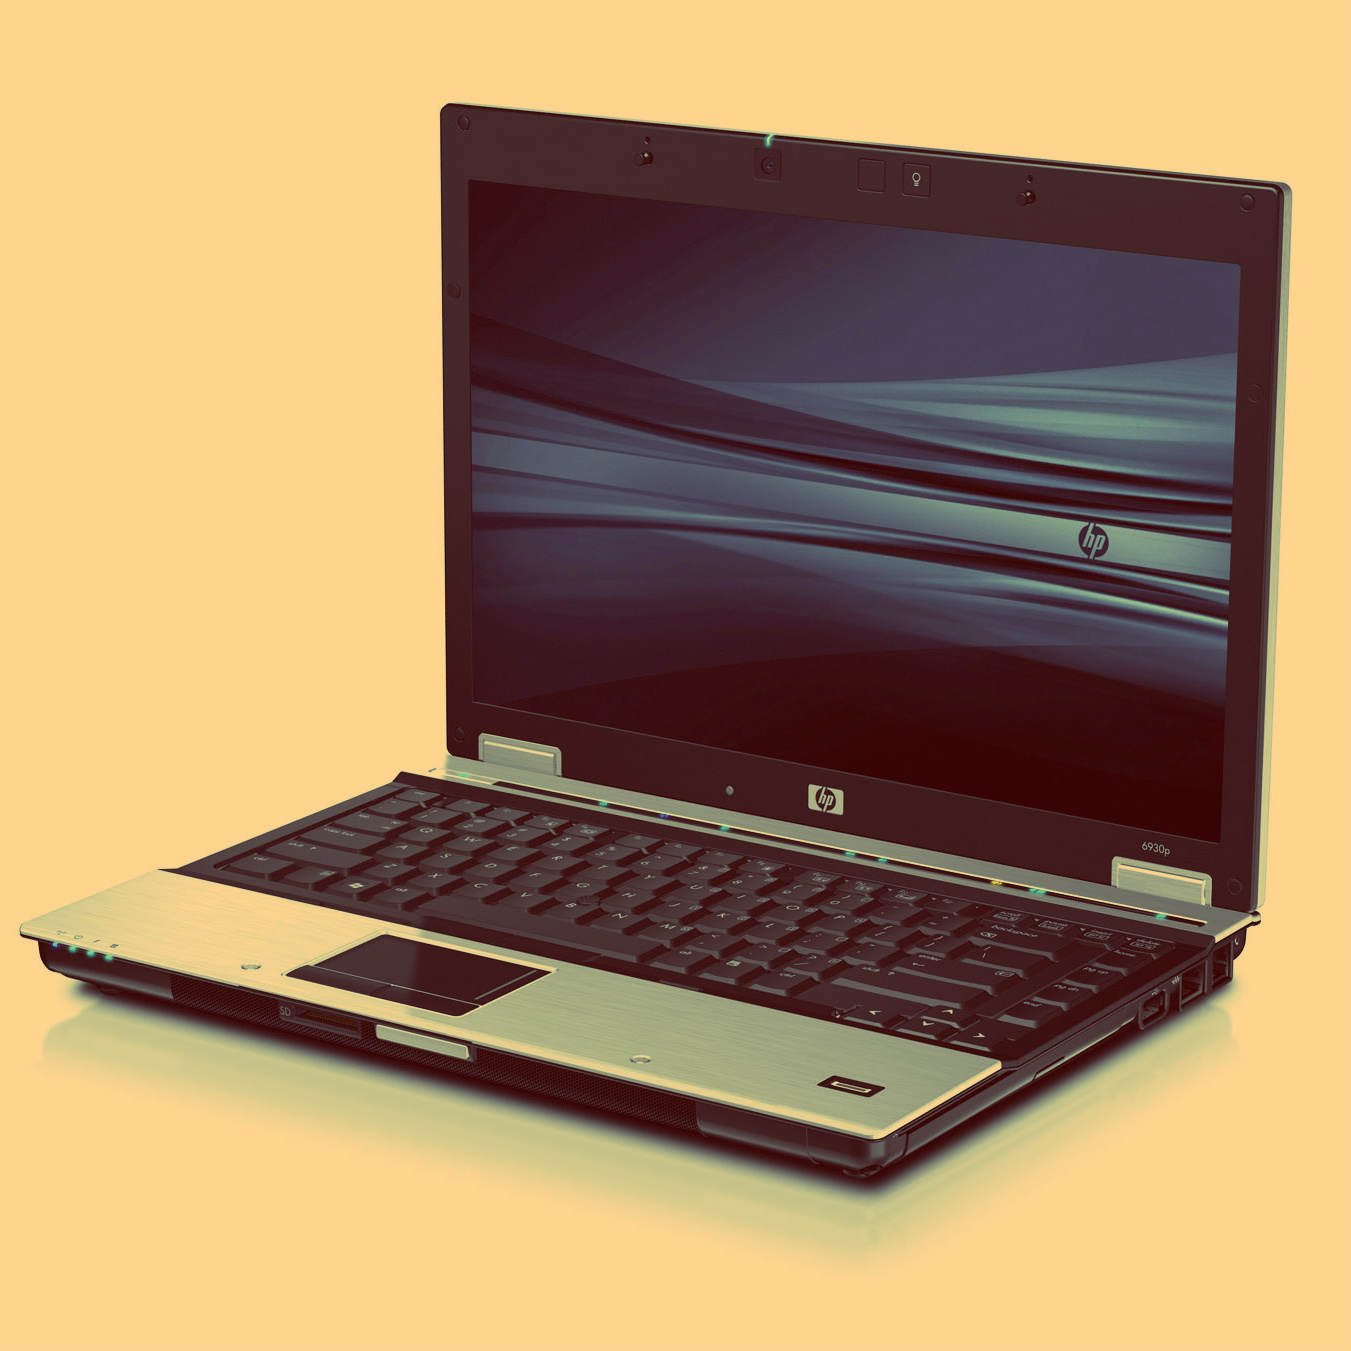 top 5 laptops 2014